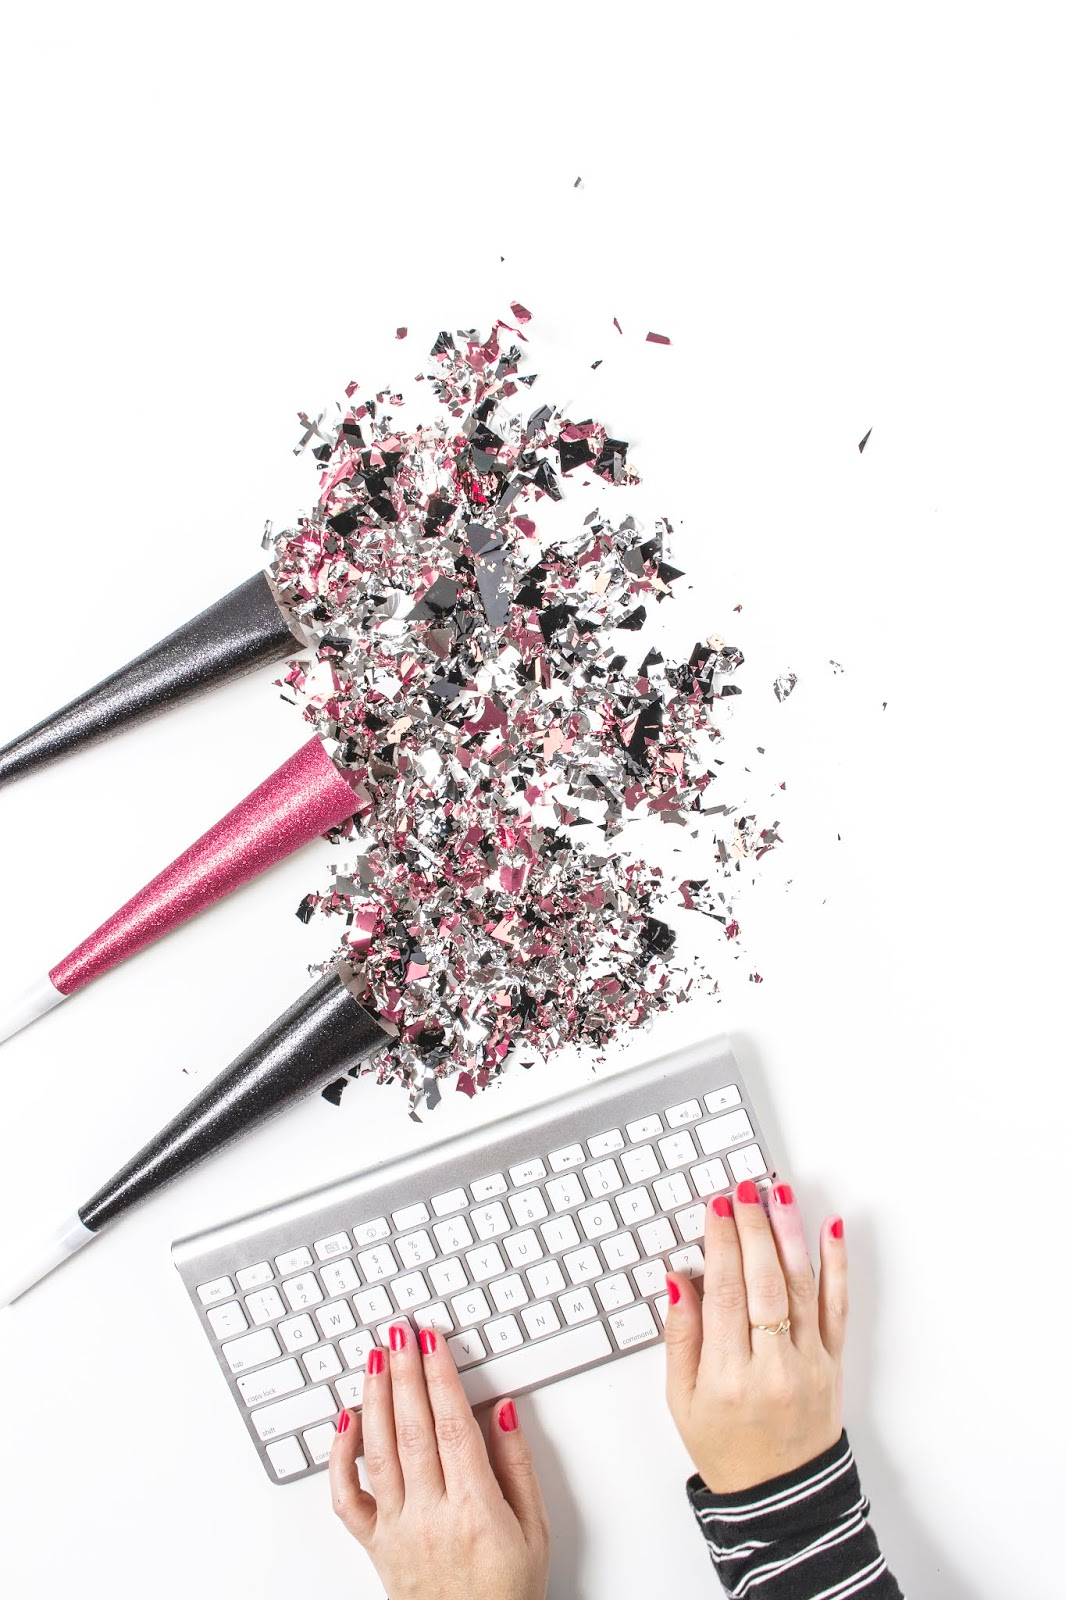 birds eye view of a silver keyboard on a white desk with glitter around it